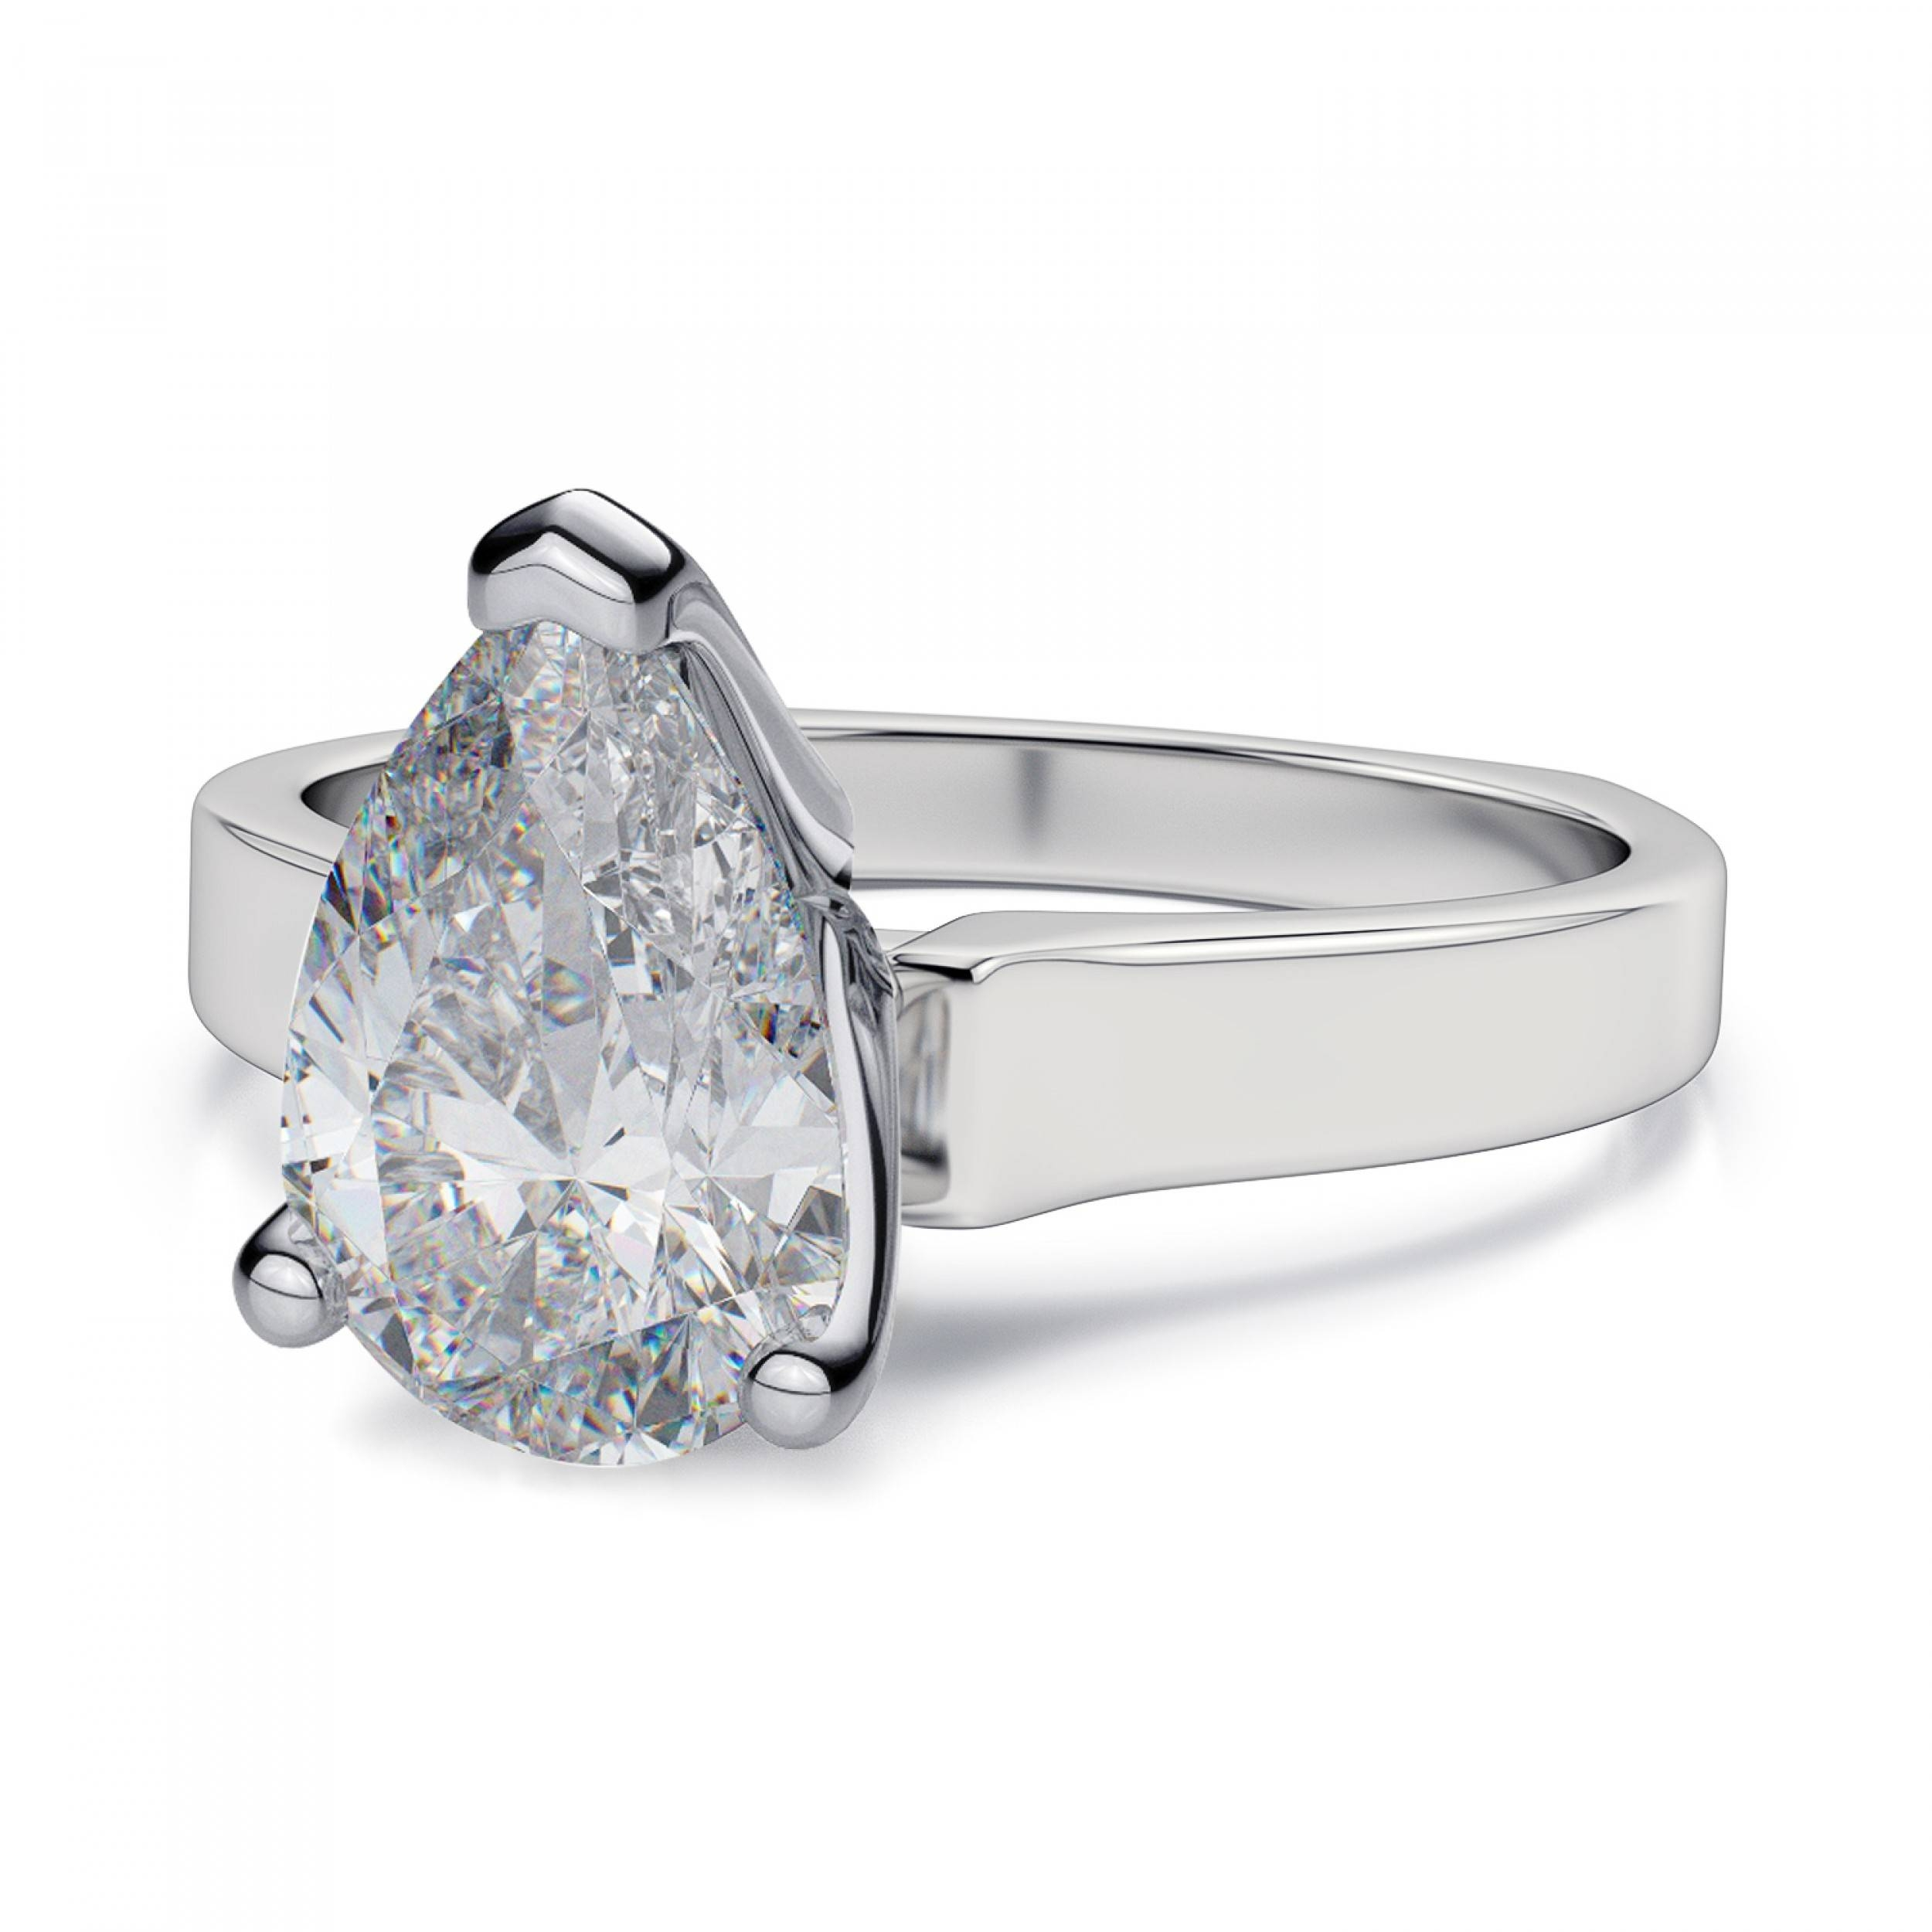 Shank Cathedral Pear Diamond Ring – Platinum Throughout Pear Shaped Engagement Rings Diamond Settings (View 13 of 15)